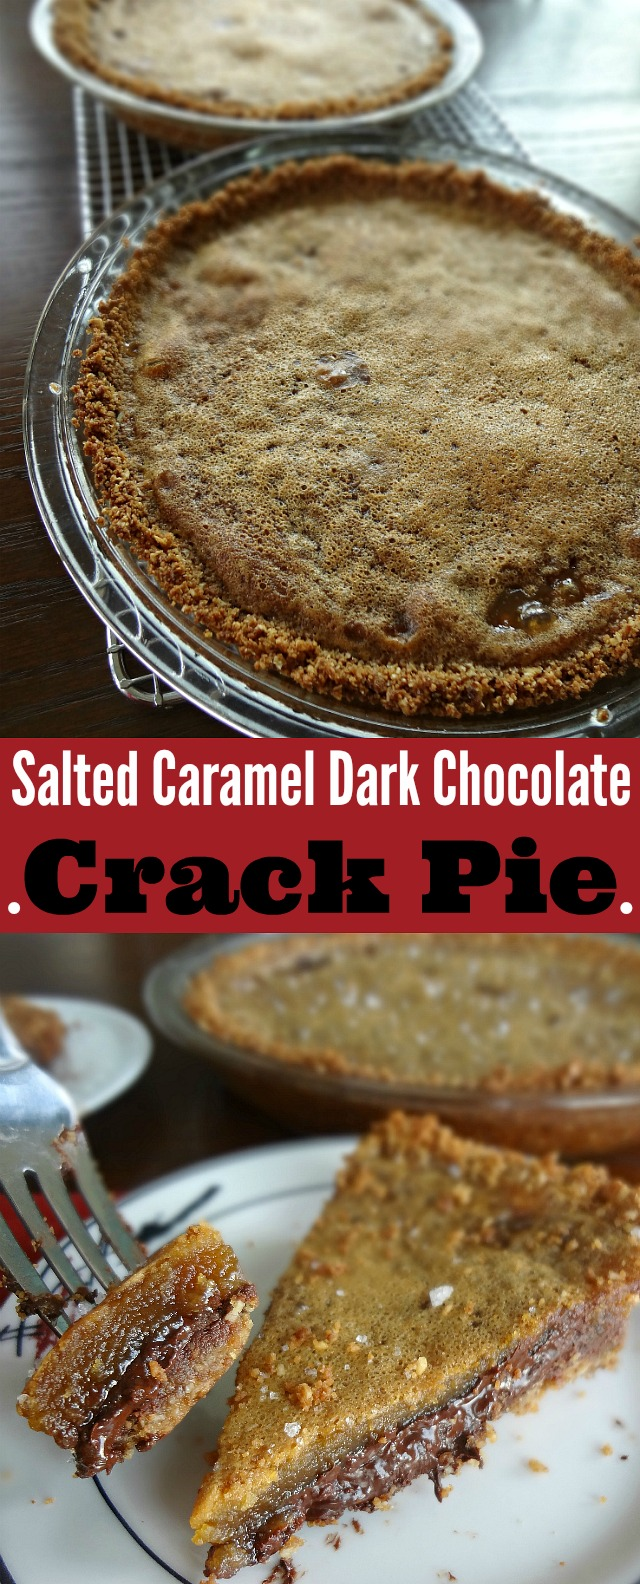 Salted Caramel Dark Chocolate Crack Pie